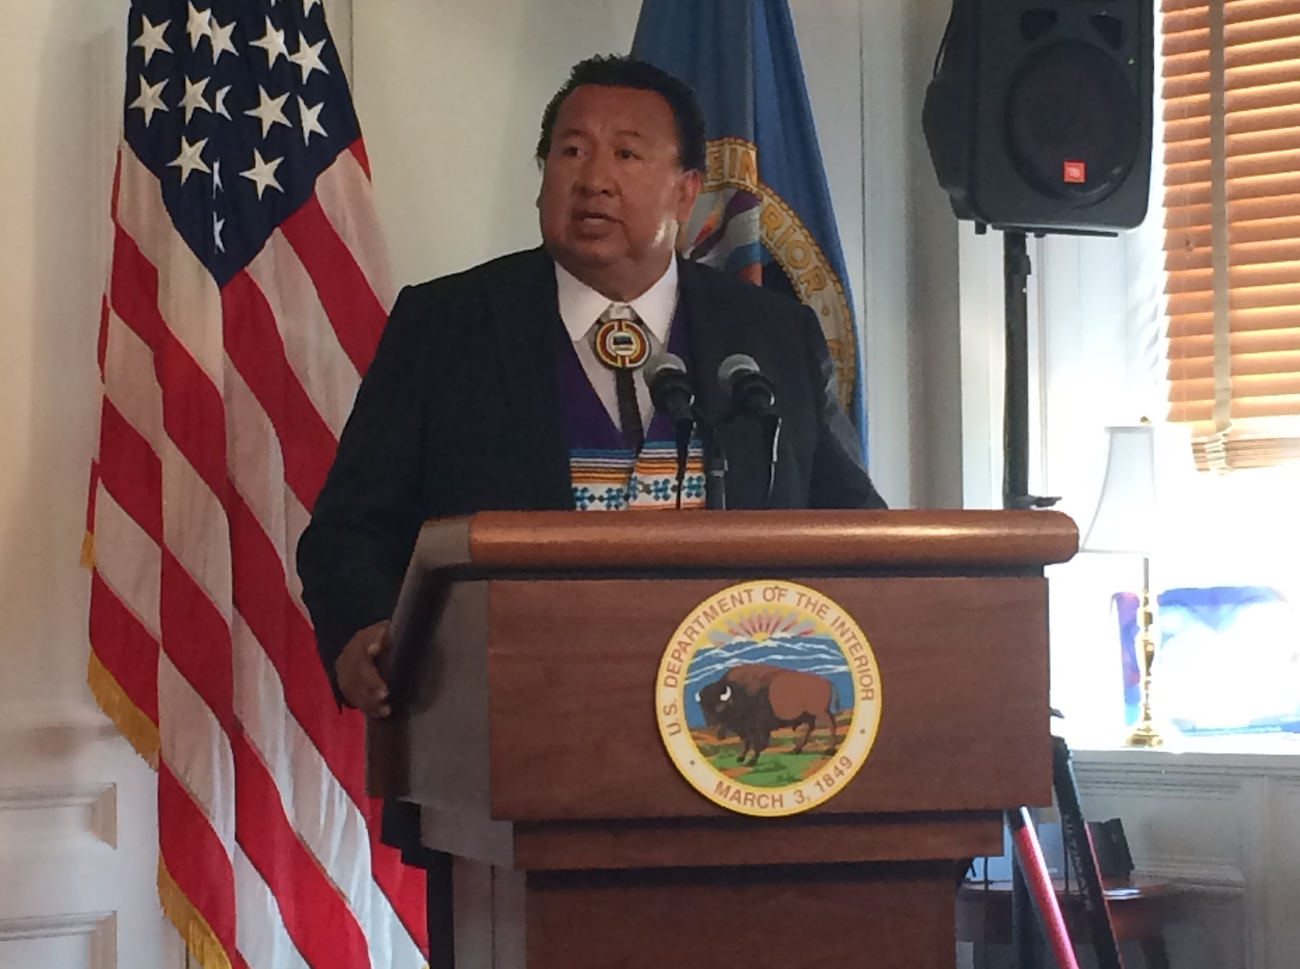 Appeals court opens leader of Miccosukee Tribe to IRS summons